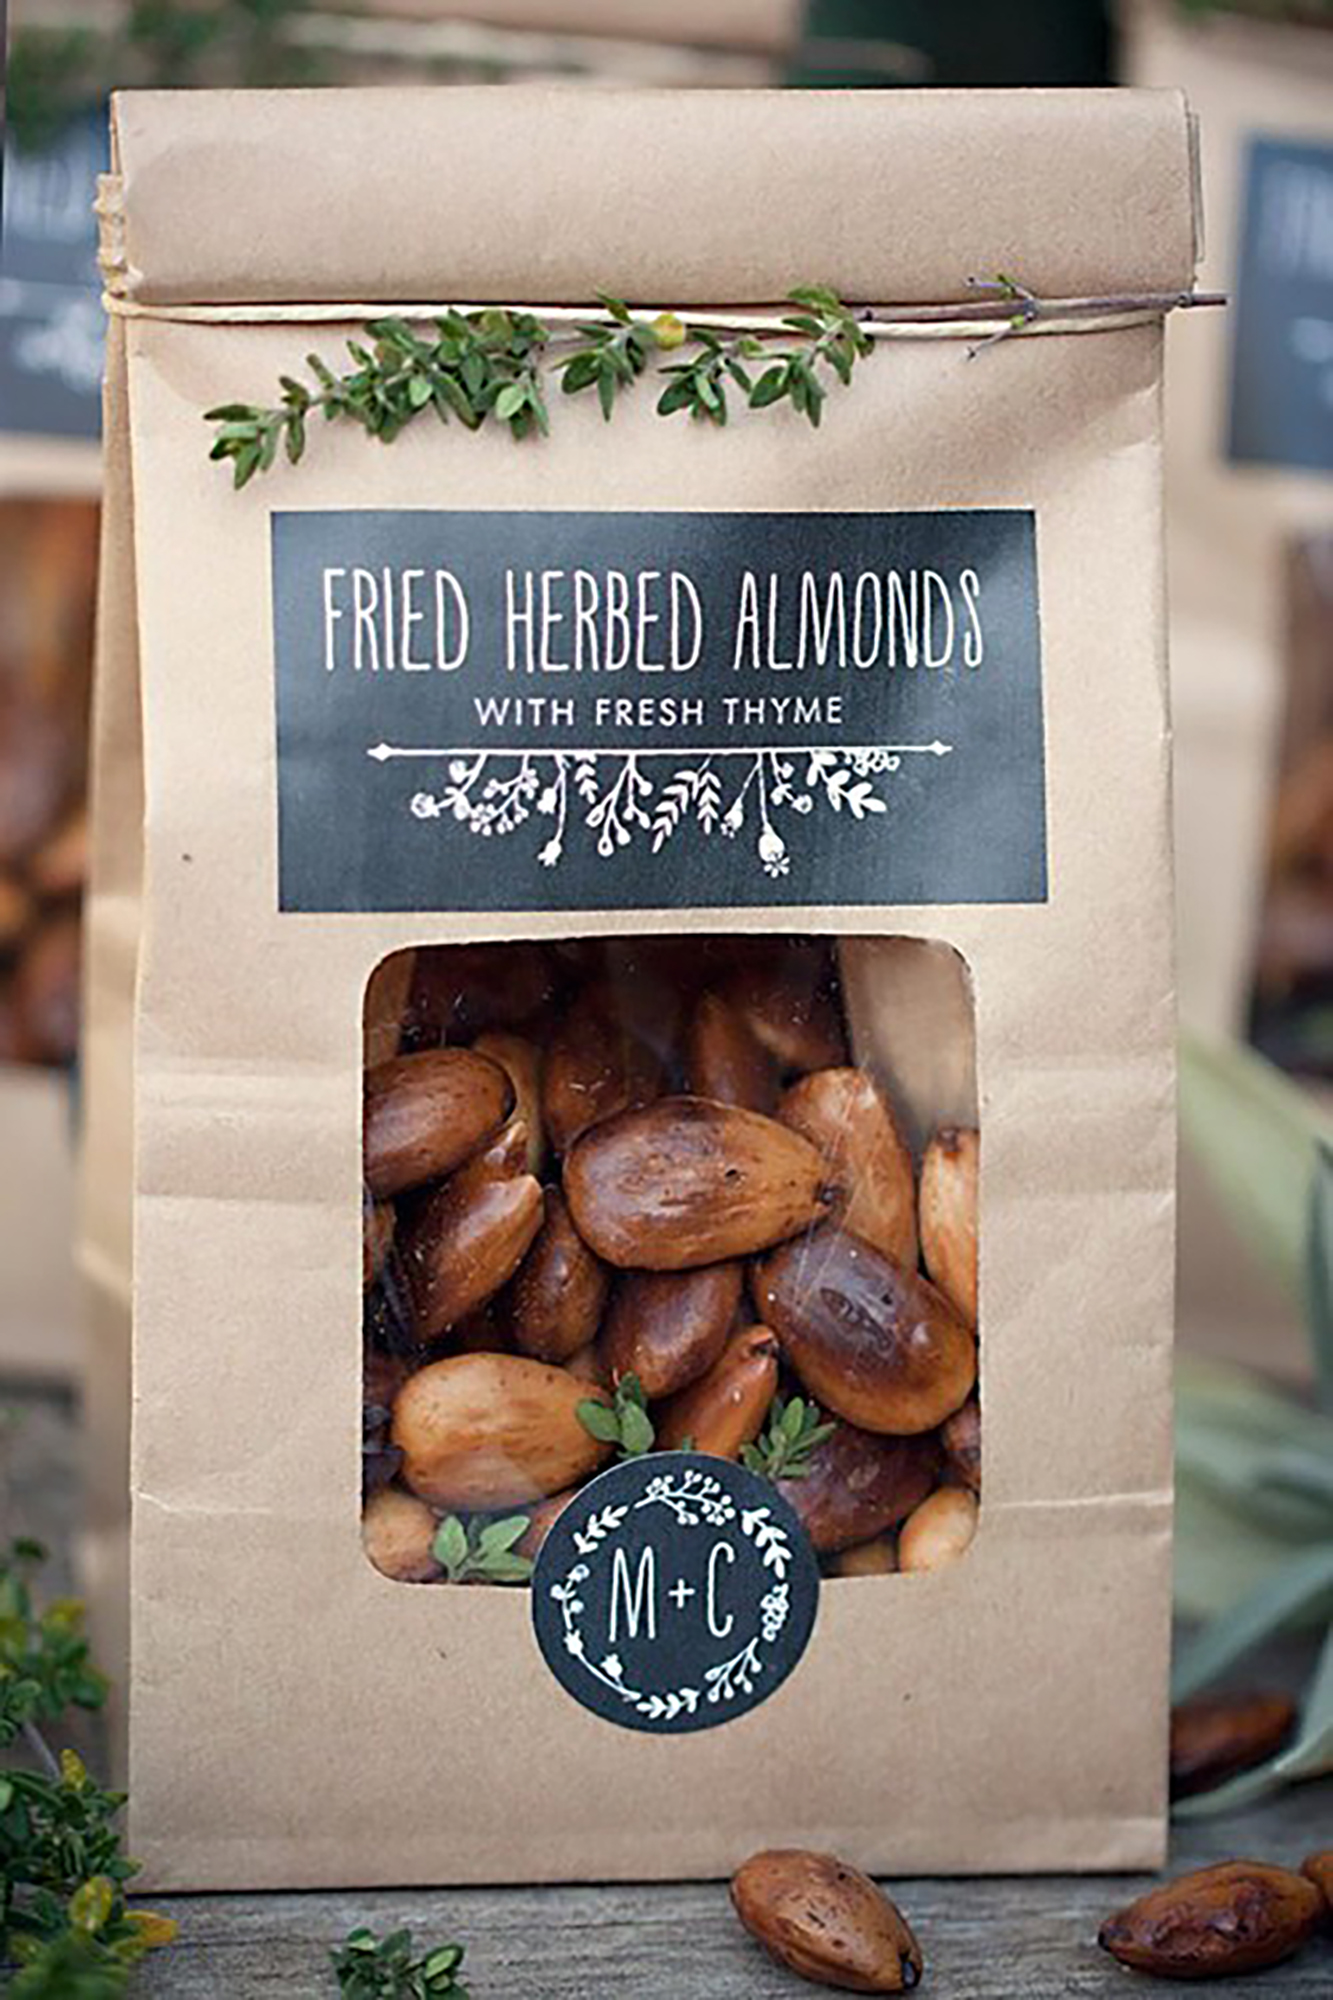 Elevating a simple snack bag doesn't have to be complicated. Hre, the couple made their fried herbed almonds unique by adding fresh thyme to the recipe and presenting the snack in a customized pouch from Evermine. The treats were garnished with greenery for an additional homemade touch.